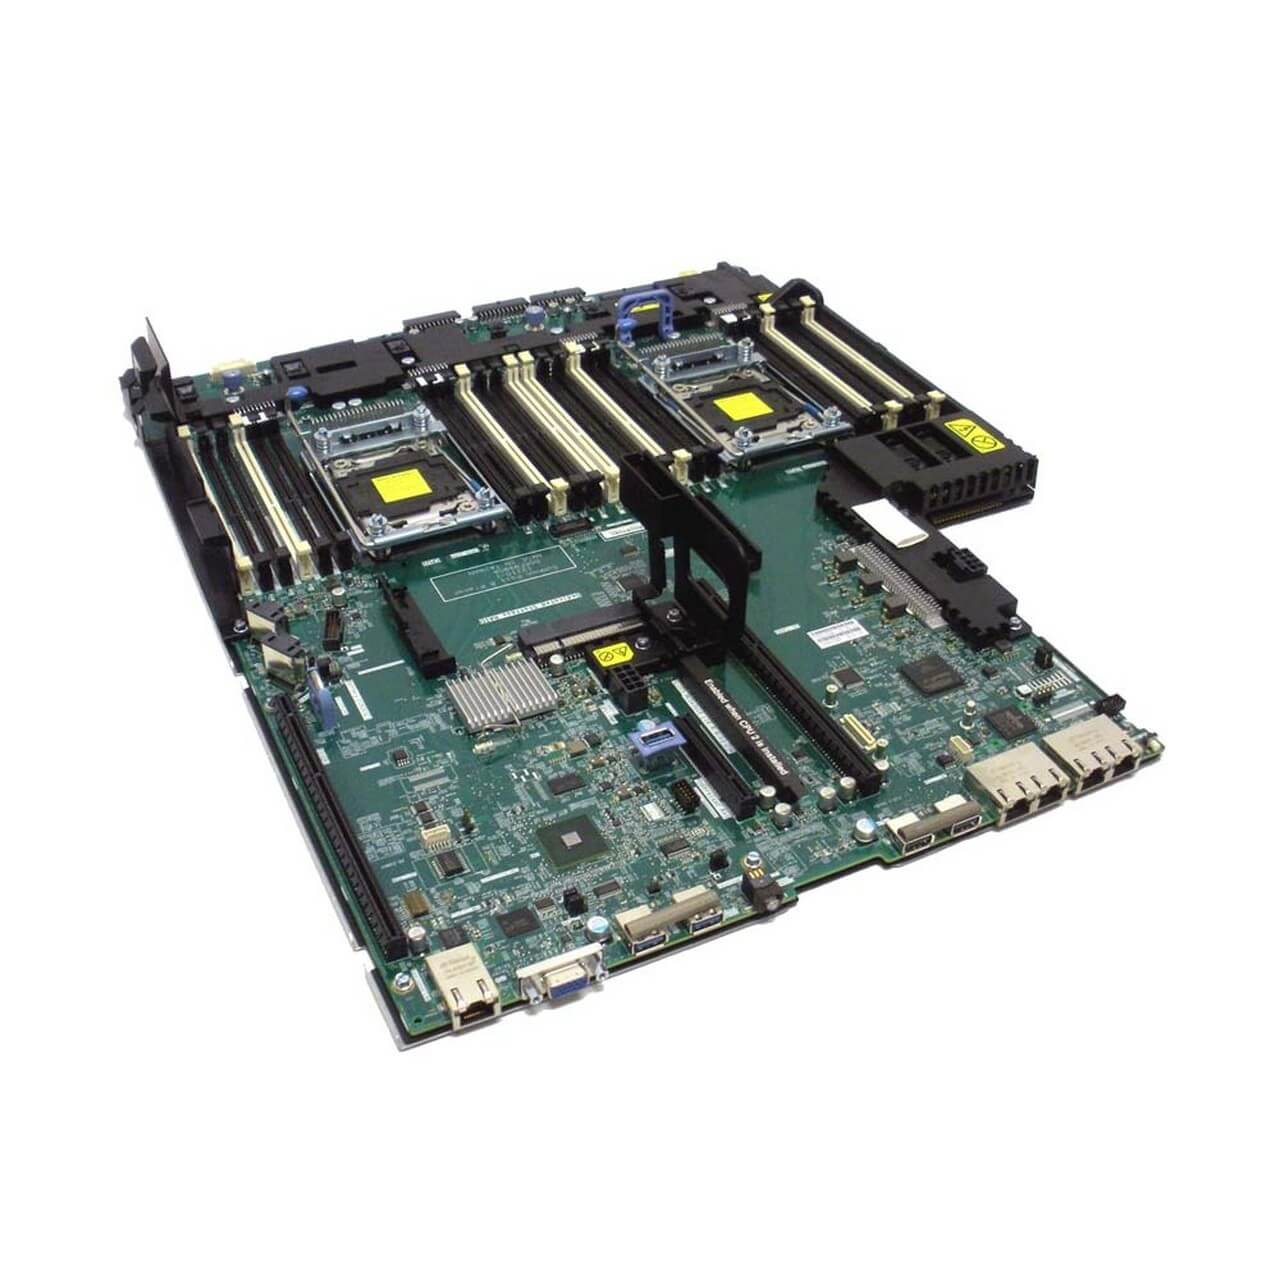 Buy & save on refurbished IBM server system boards from your trusted partners at Flagship Technologies.